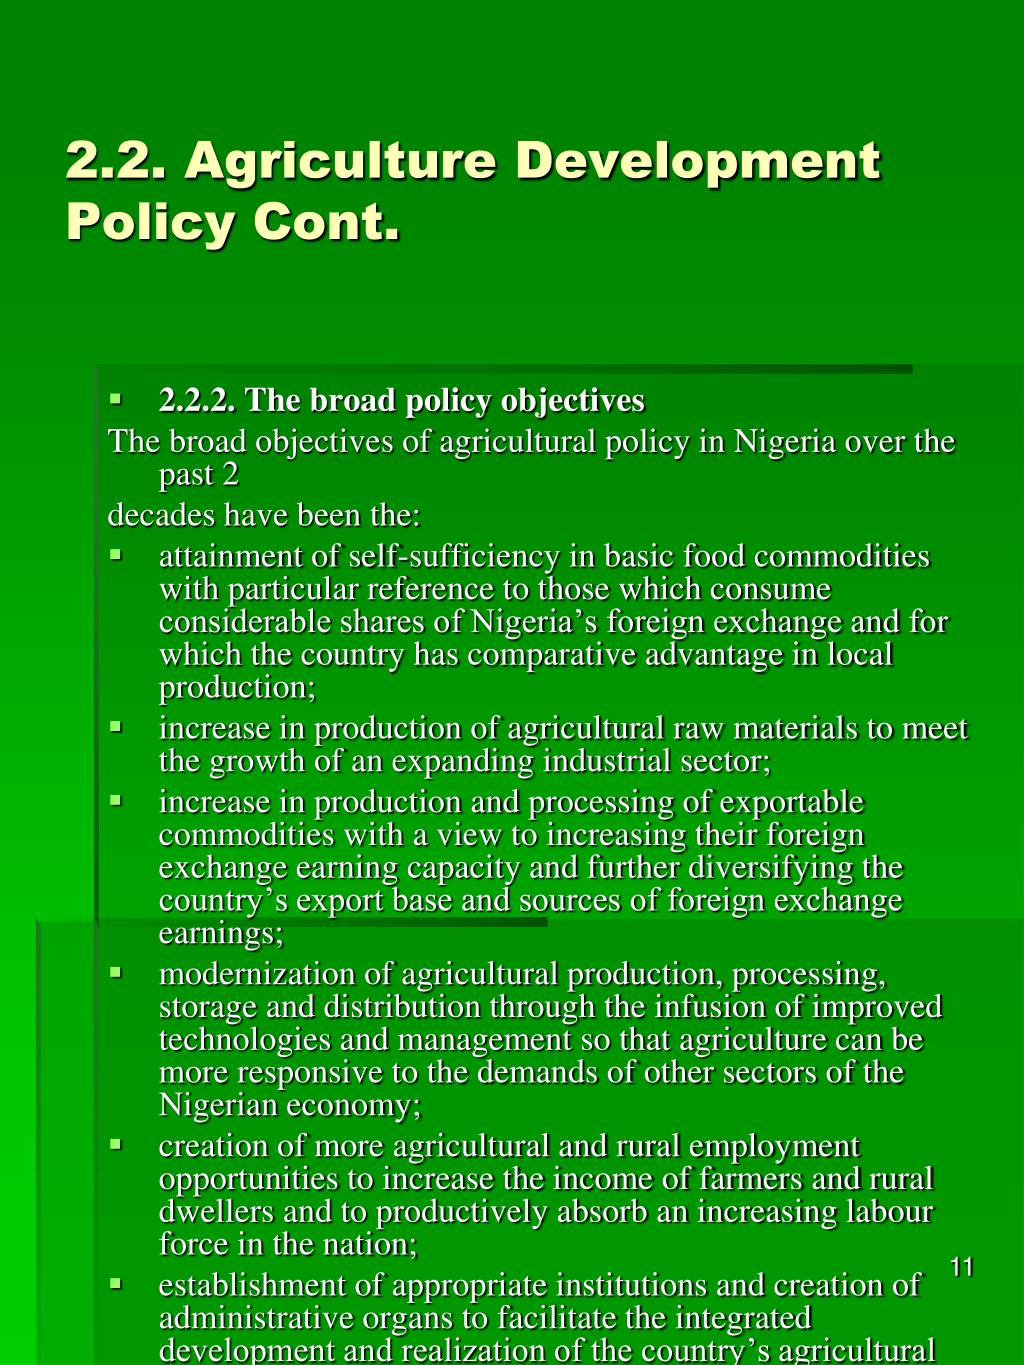 2.2. Agriculture Development Policy Cont.